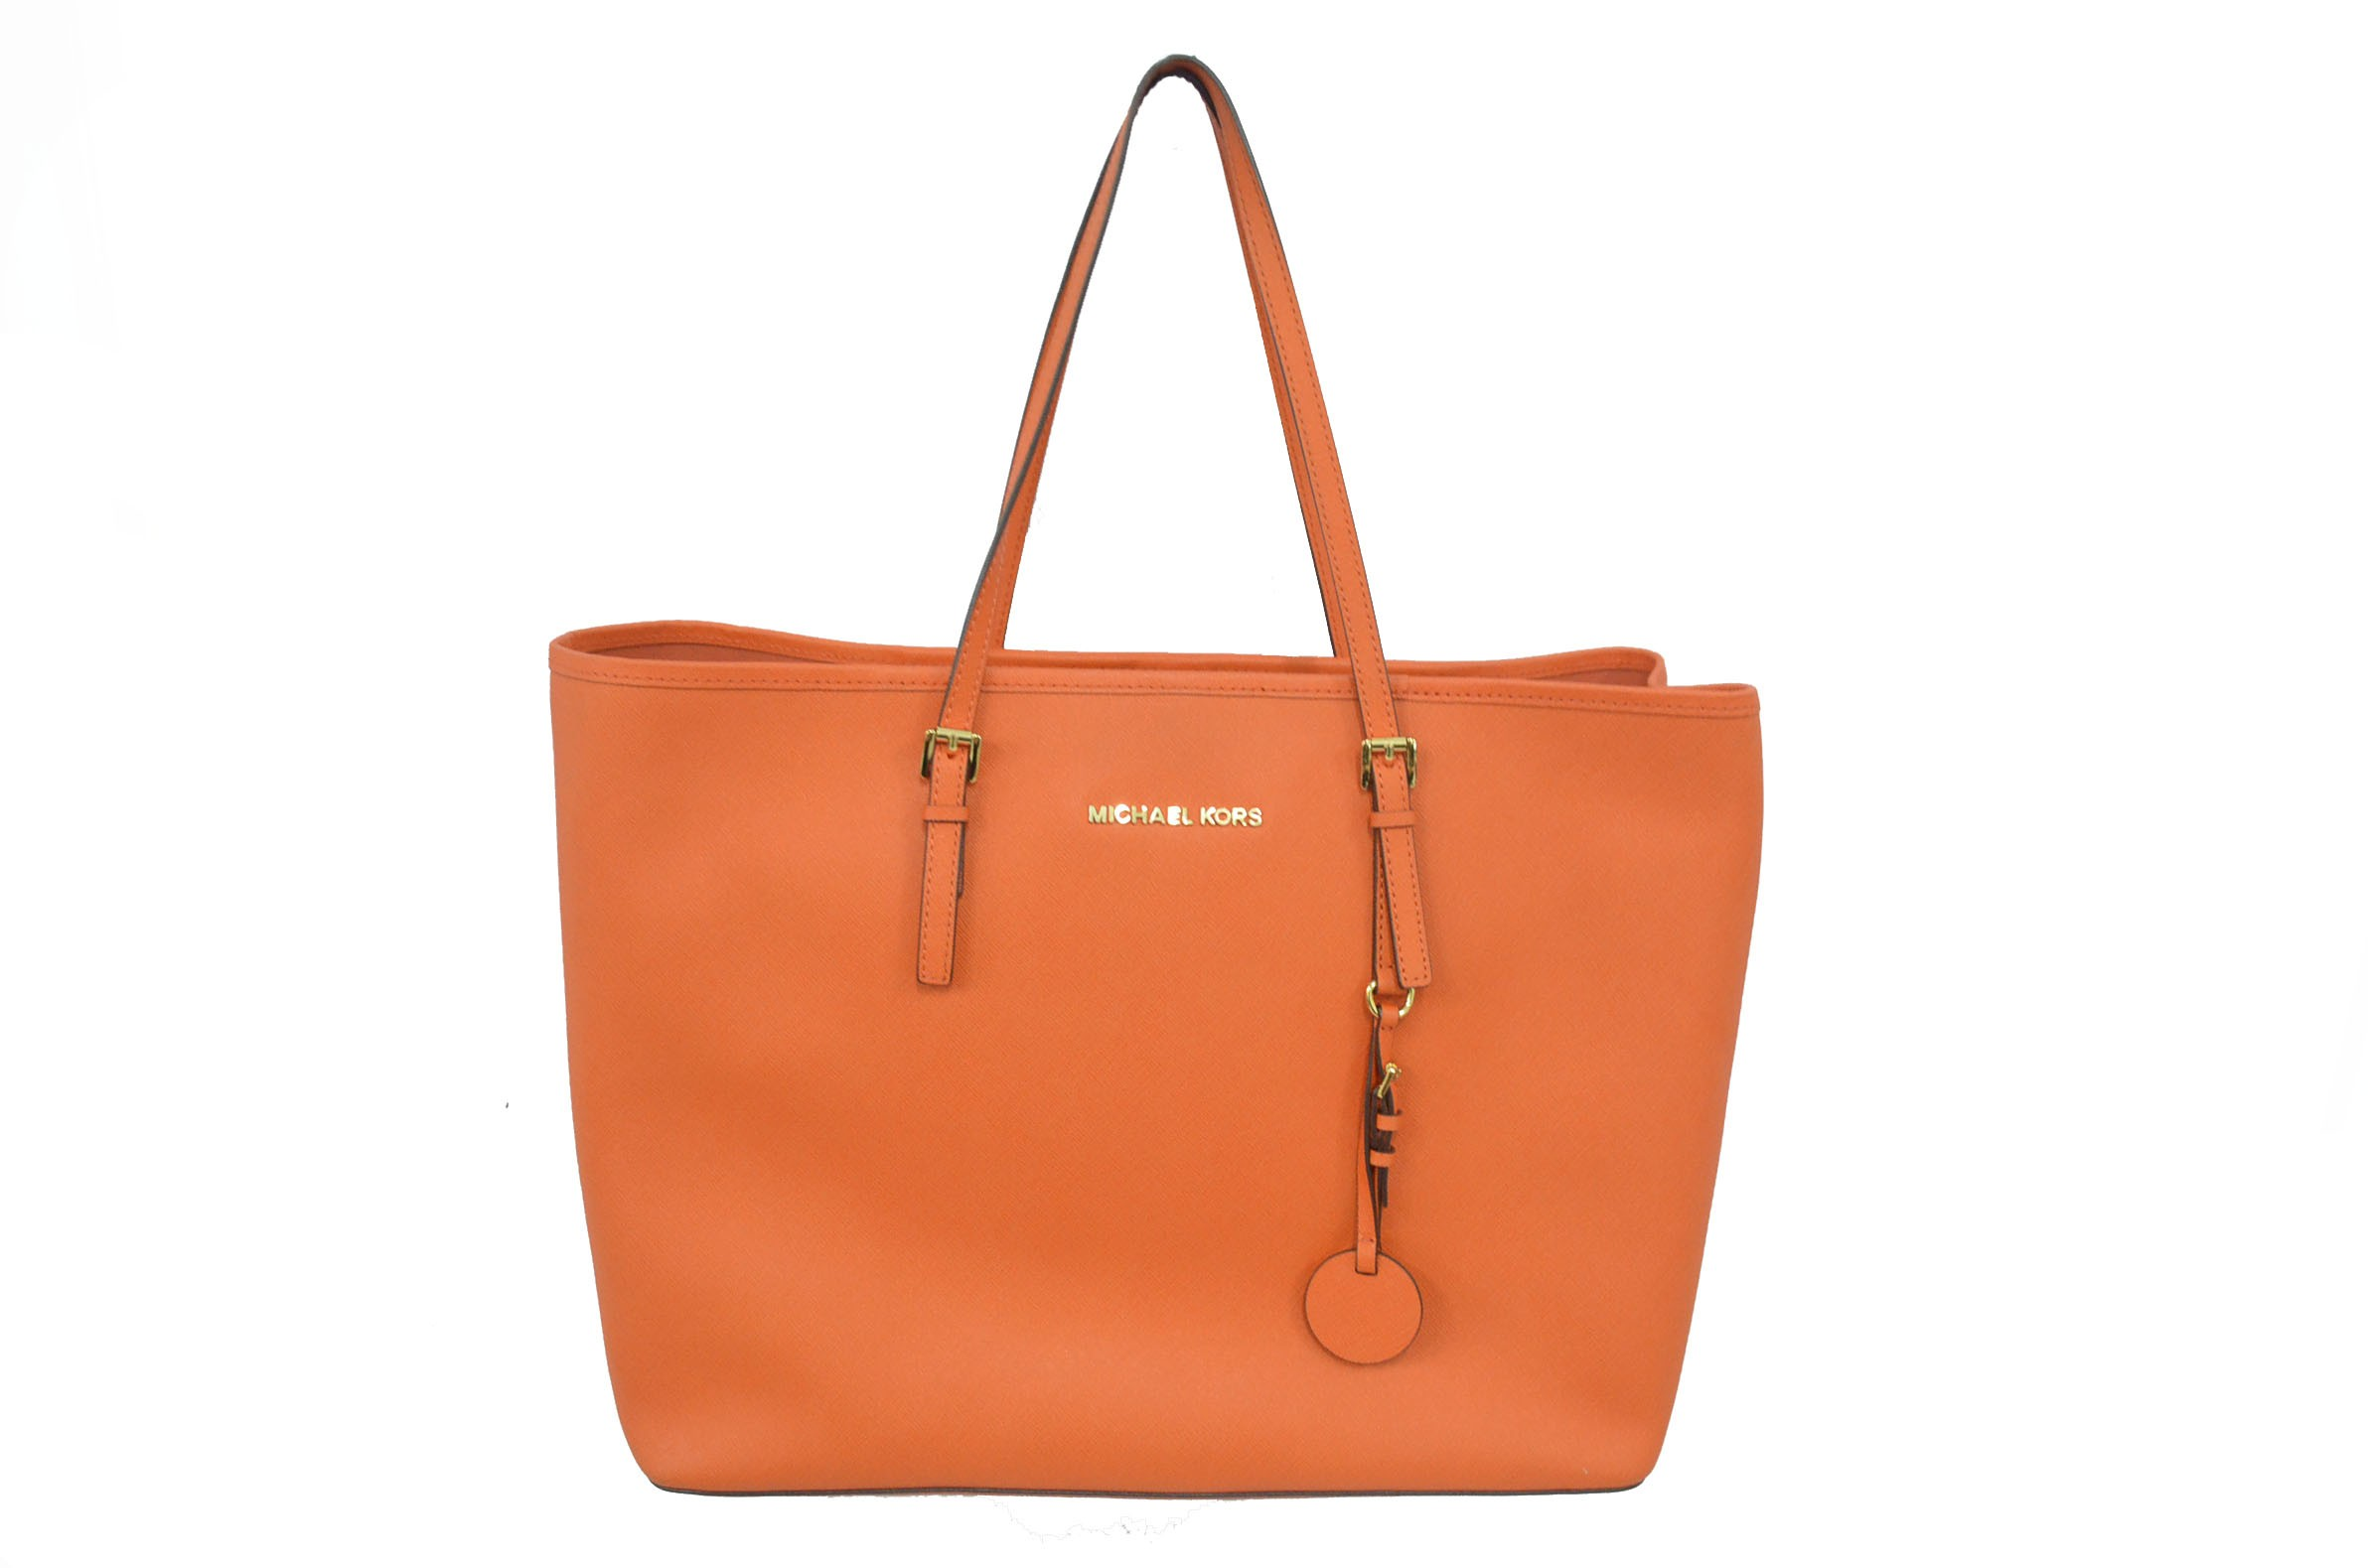 Michael kors tote bags philippines - Michael Kors Jet Set Travel Tote Tangerine